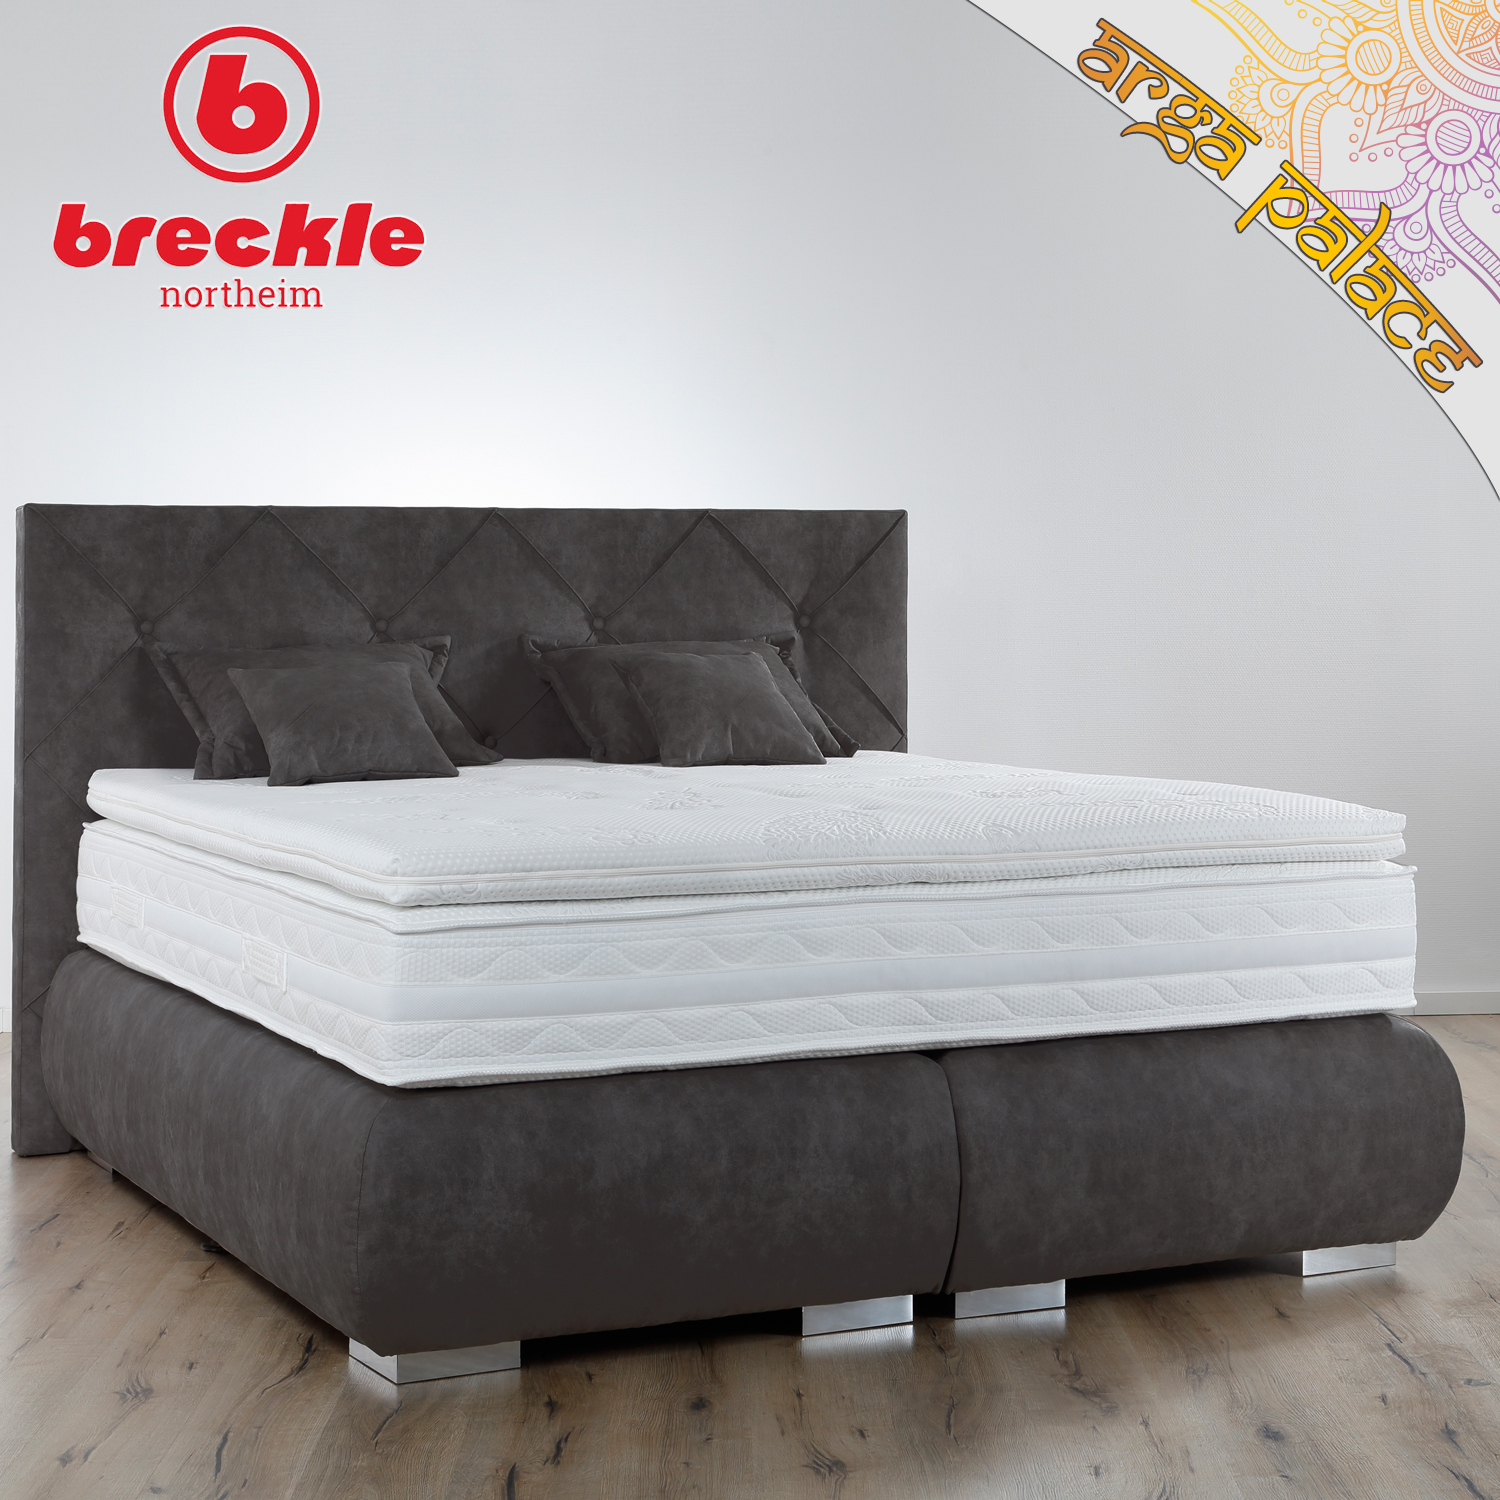 breckle boxspringbett arga palace 120x200 cm inkl gel topper platin premium kissenset. Black Bedroom Furniture Sets. Home Design Ideas